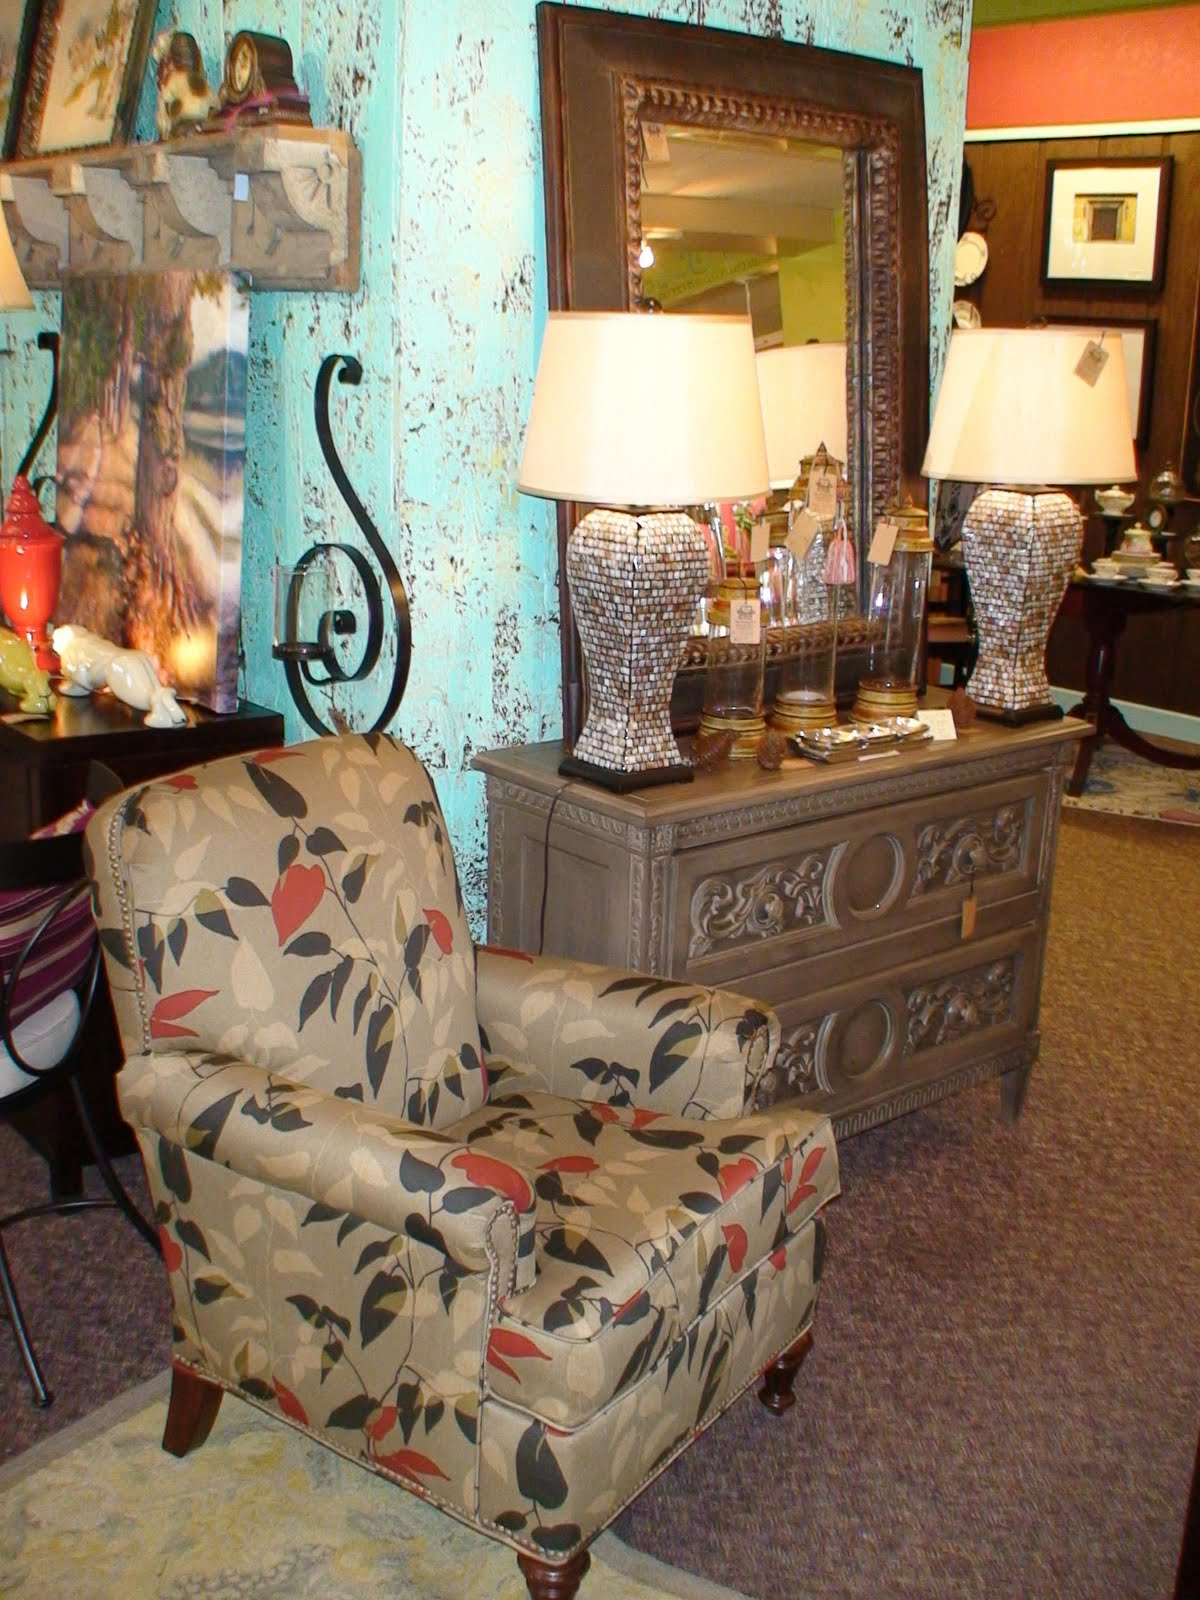 FREE IS MY LIFE: DISCOUNT: 30% off at The Nesting Place in Milford ENDS 5/31